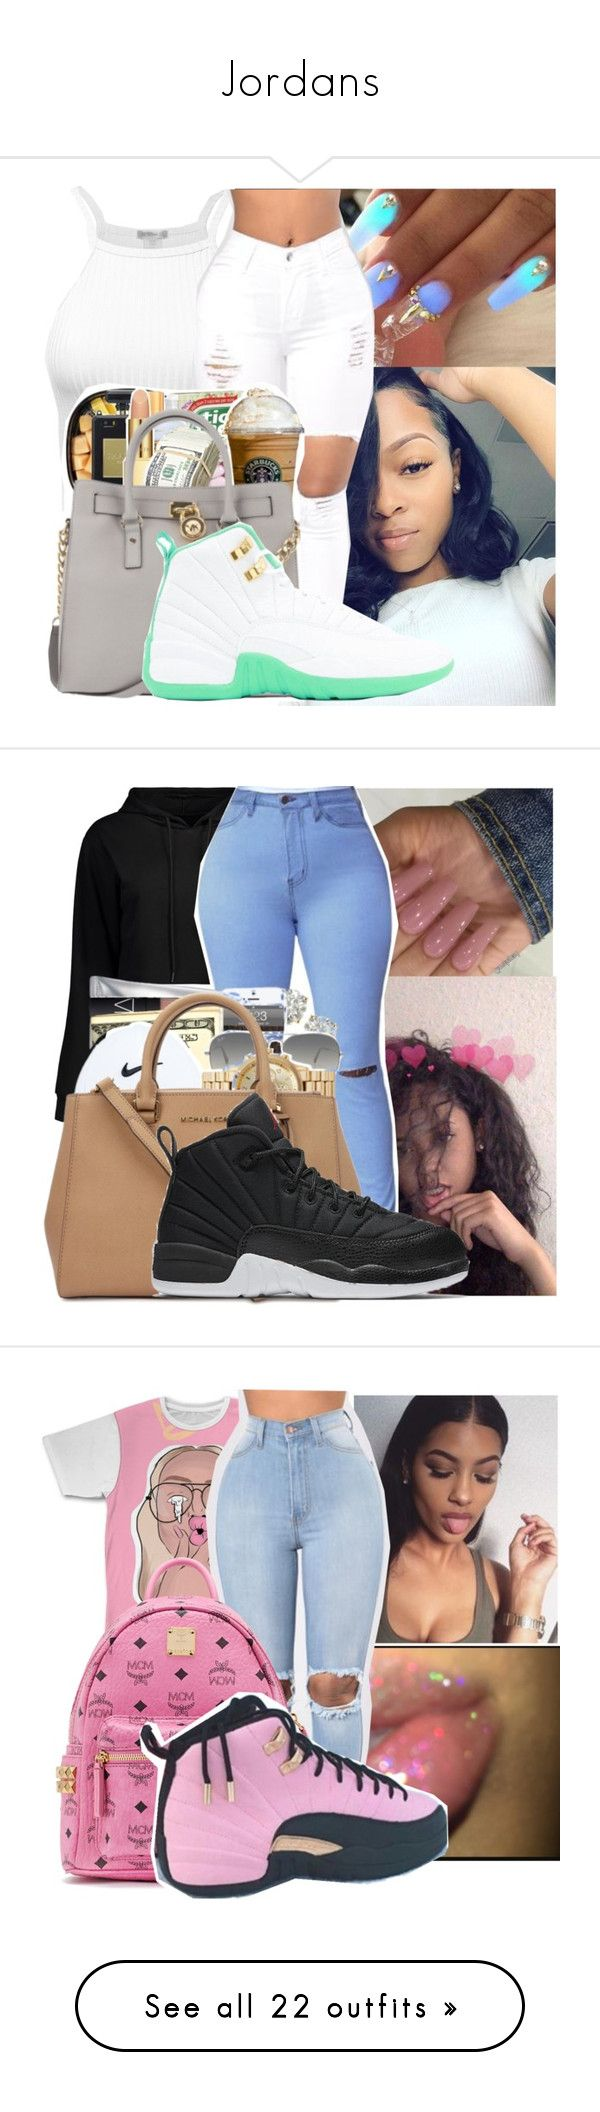 """Jordans"" by badleaa ❤ liked on Polyvore featuring Ray-Ban, NIKE, MCM, Topshop, Boohoo, beauty, Retrò, O-Mighty, Levi's and Massimo Alba"